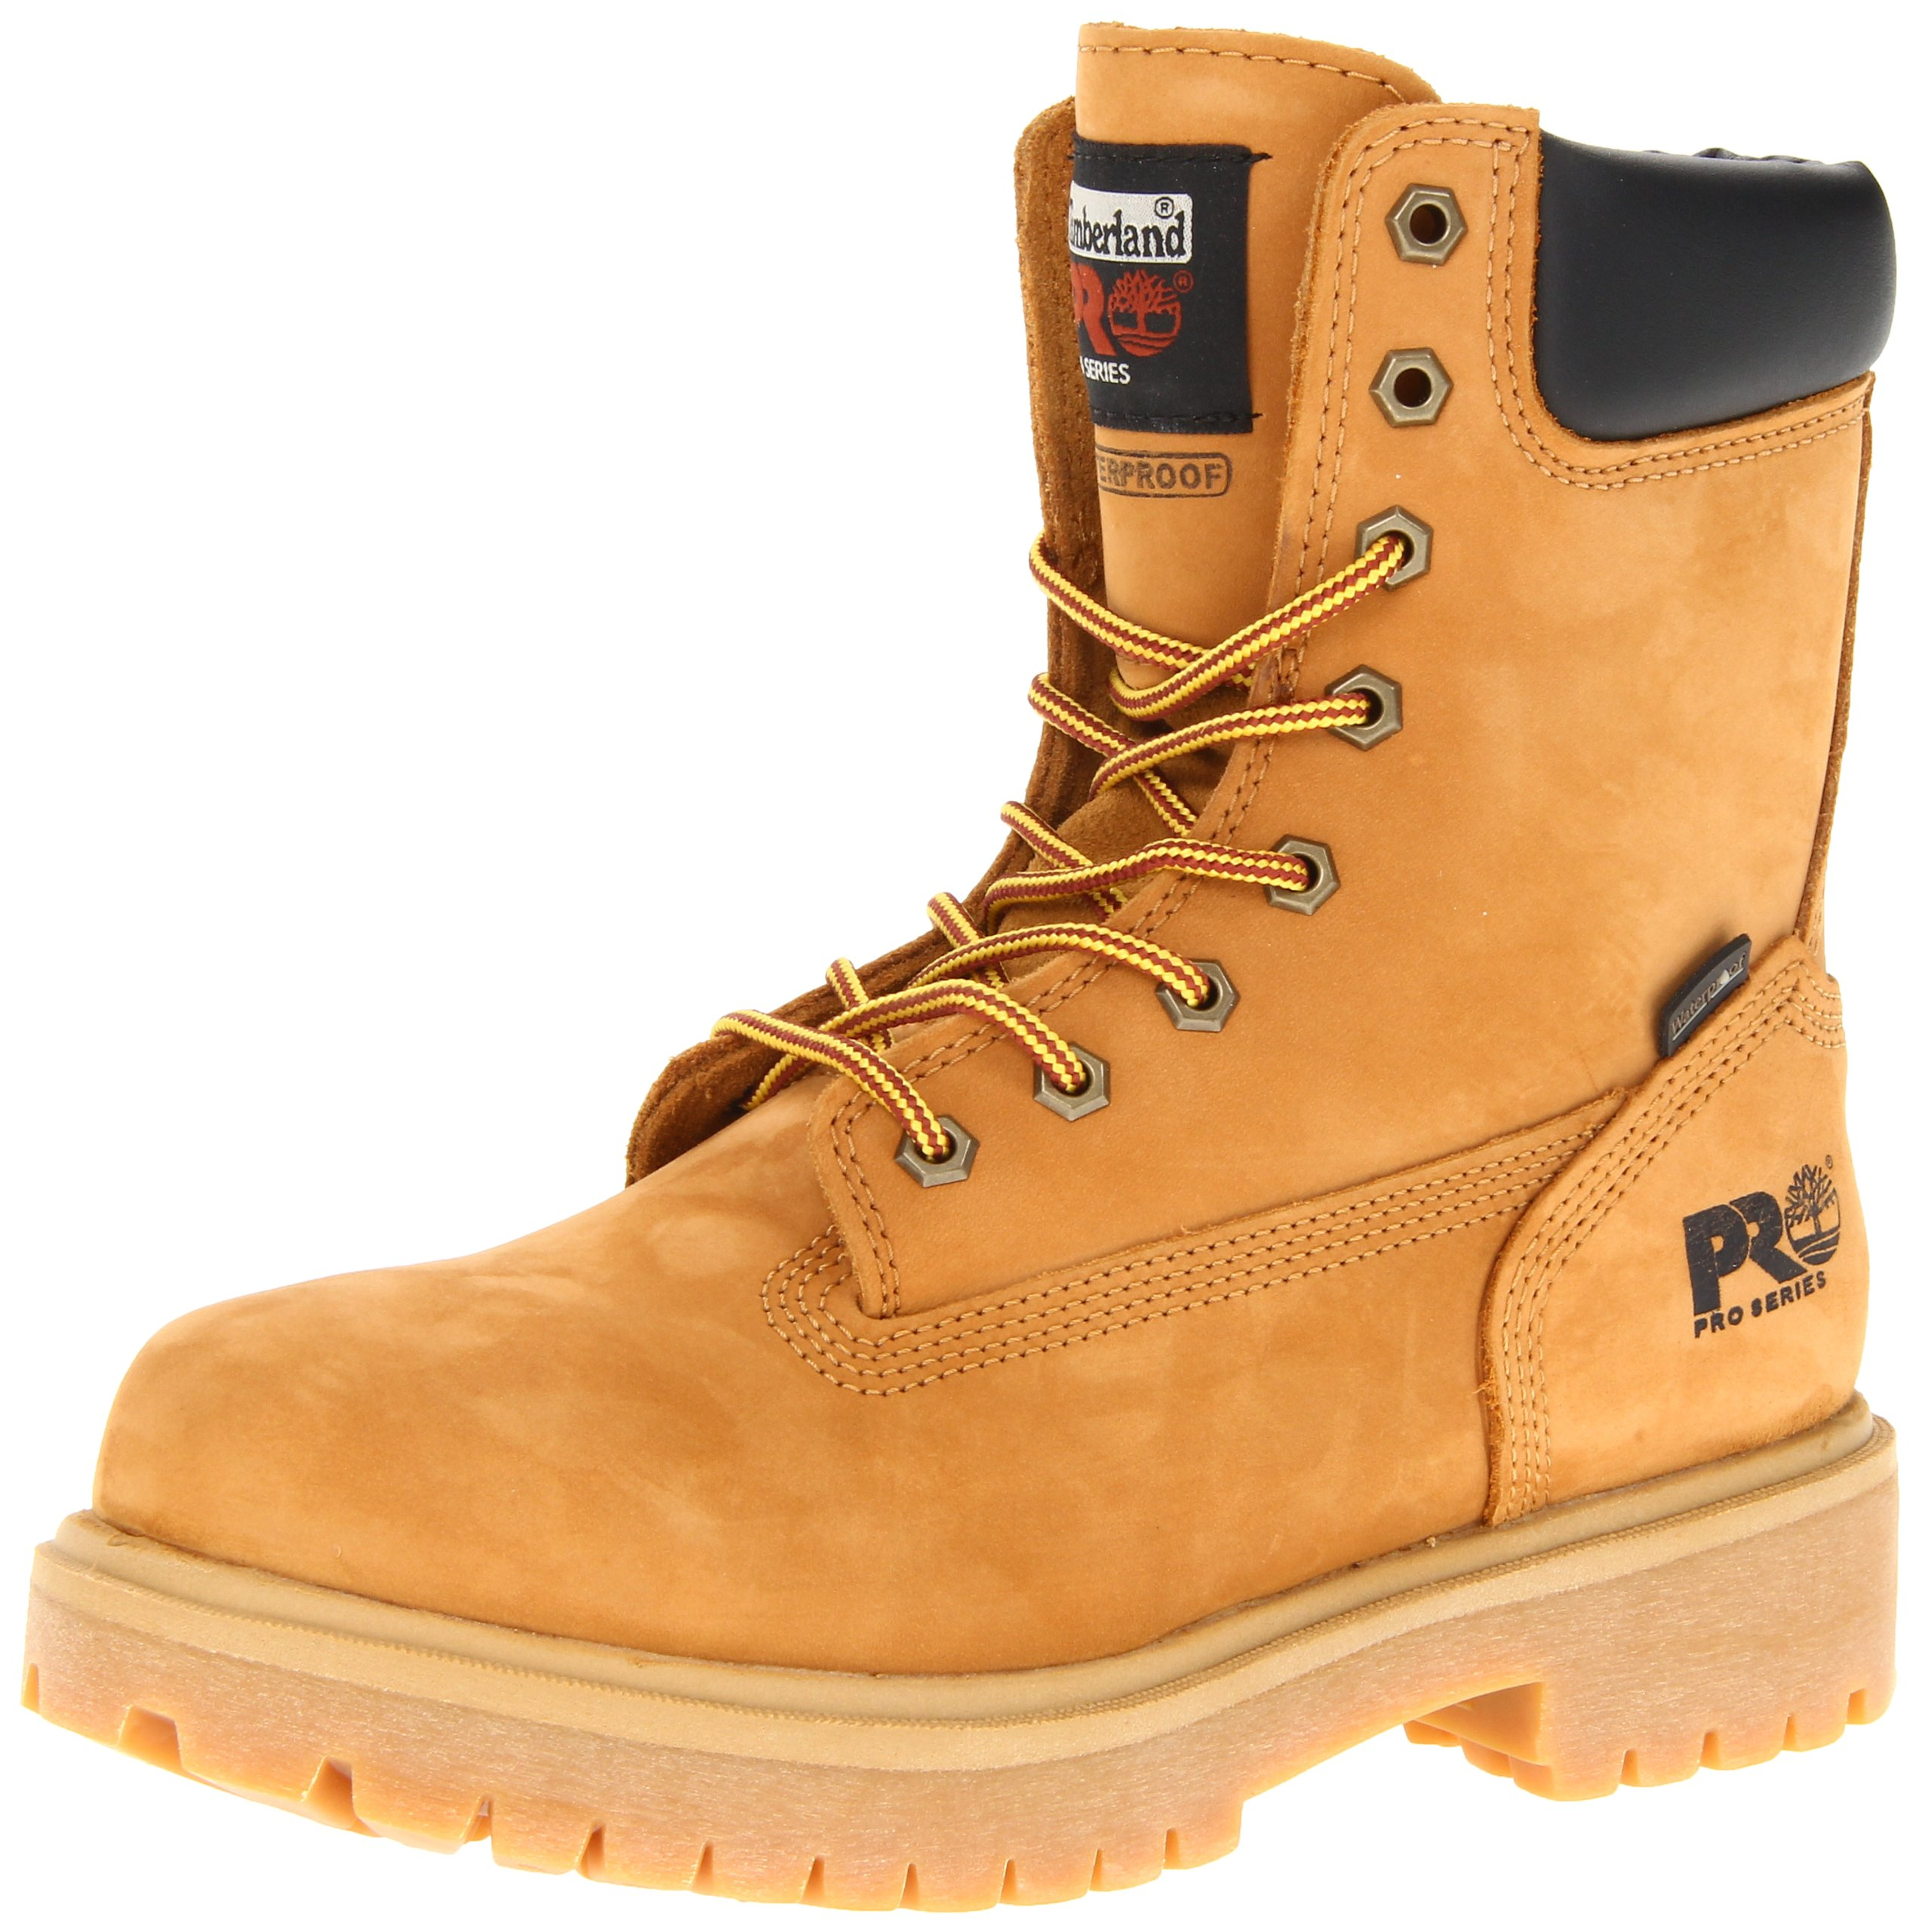 Timberland PRO Men's Wheat 26011 Direct Attach 8'' Soft-Toe Boot,Yellow,10.5 M